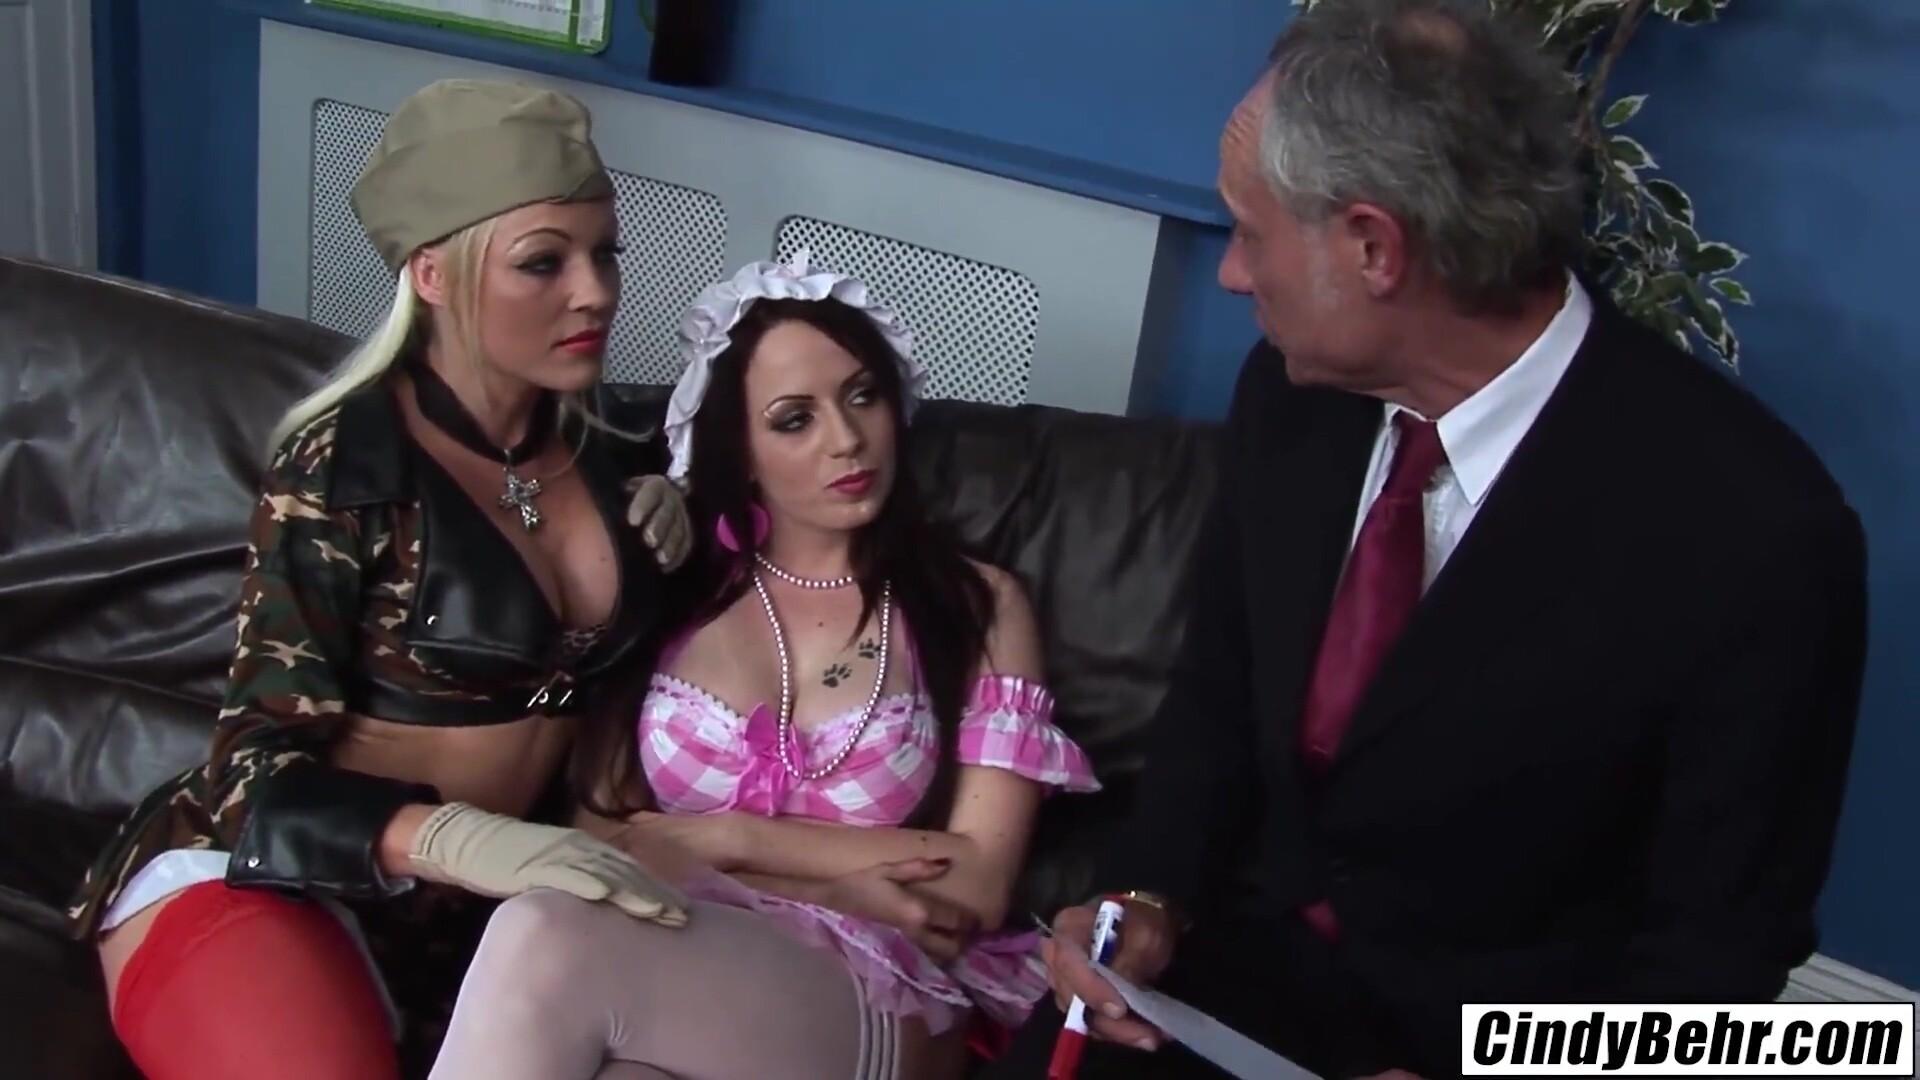 Cindy Behr joins stepsister in hot orgy European babes